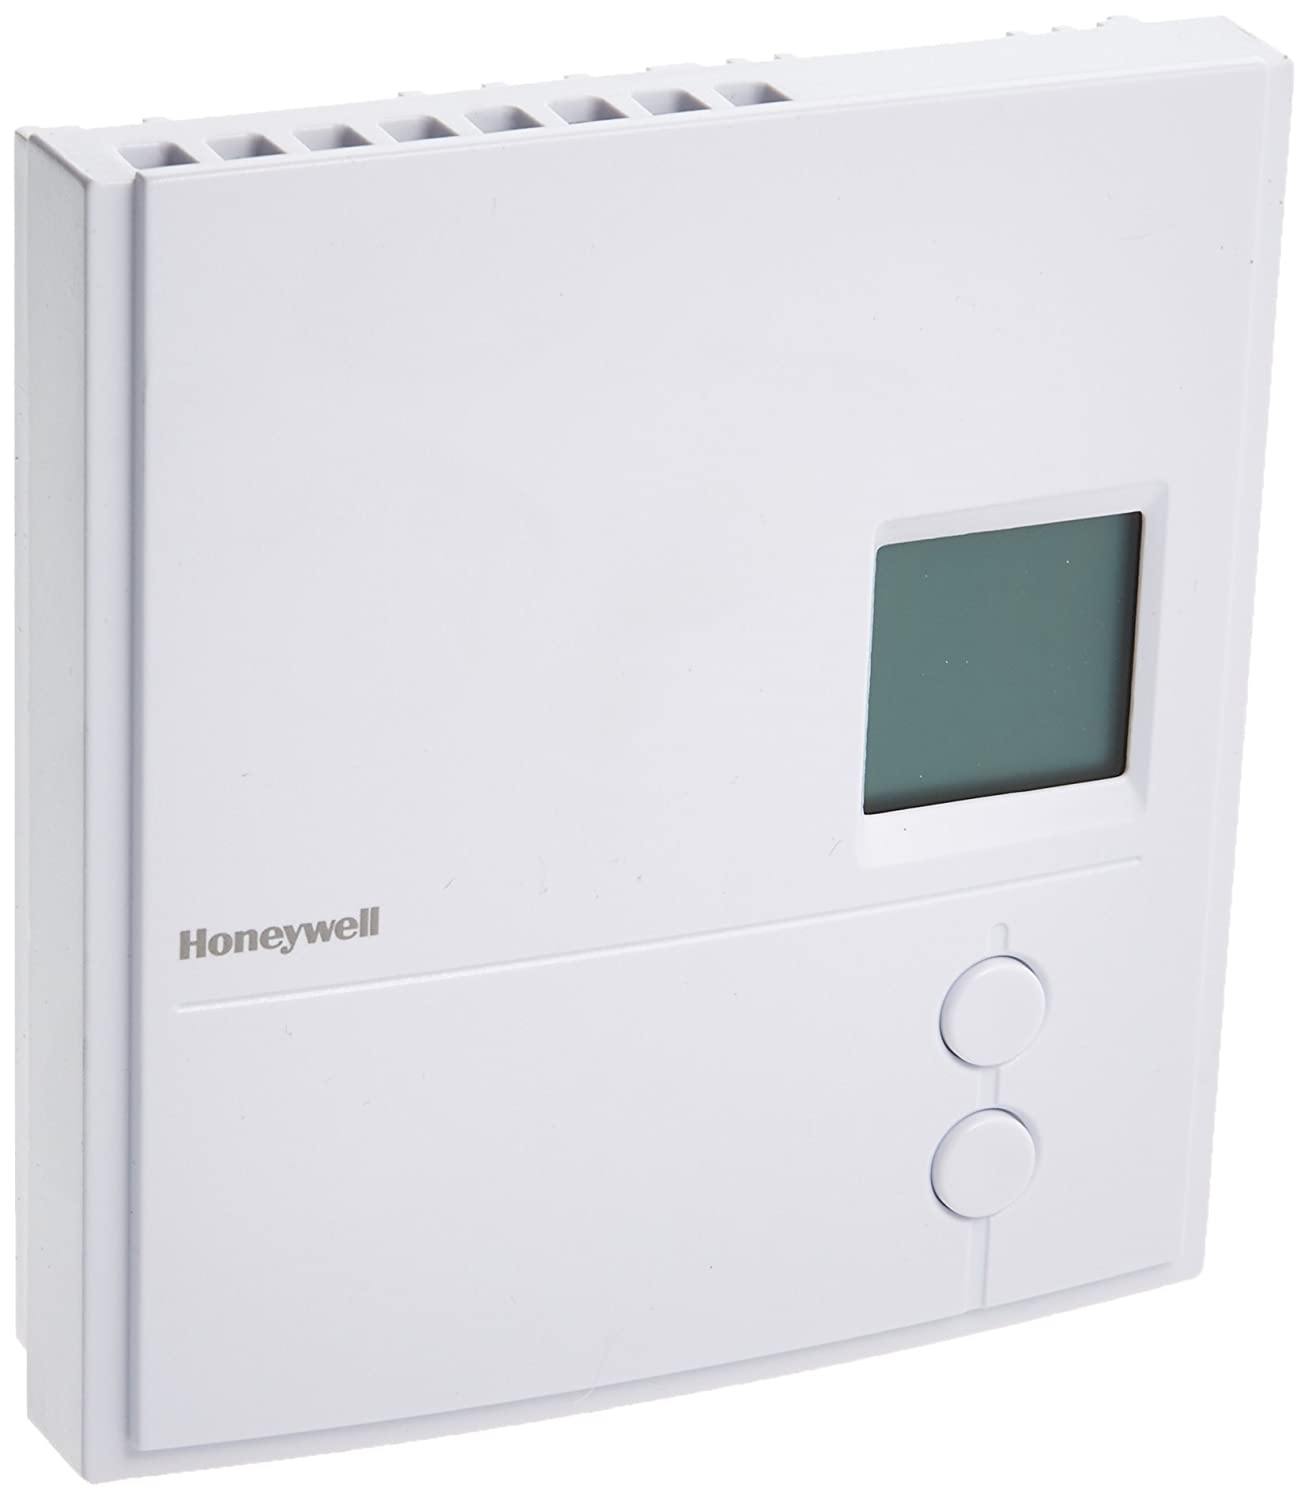 Honeywell RLV3150A1004/E RLV3150A Non-Programmable Thermostat